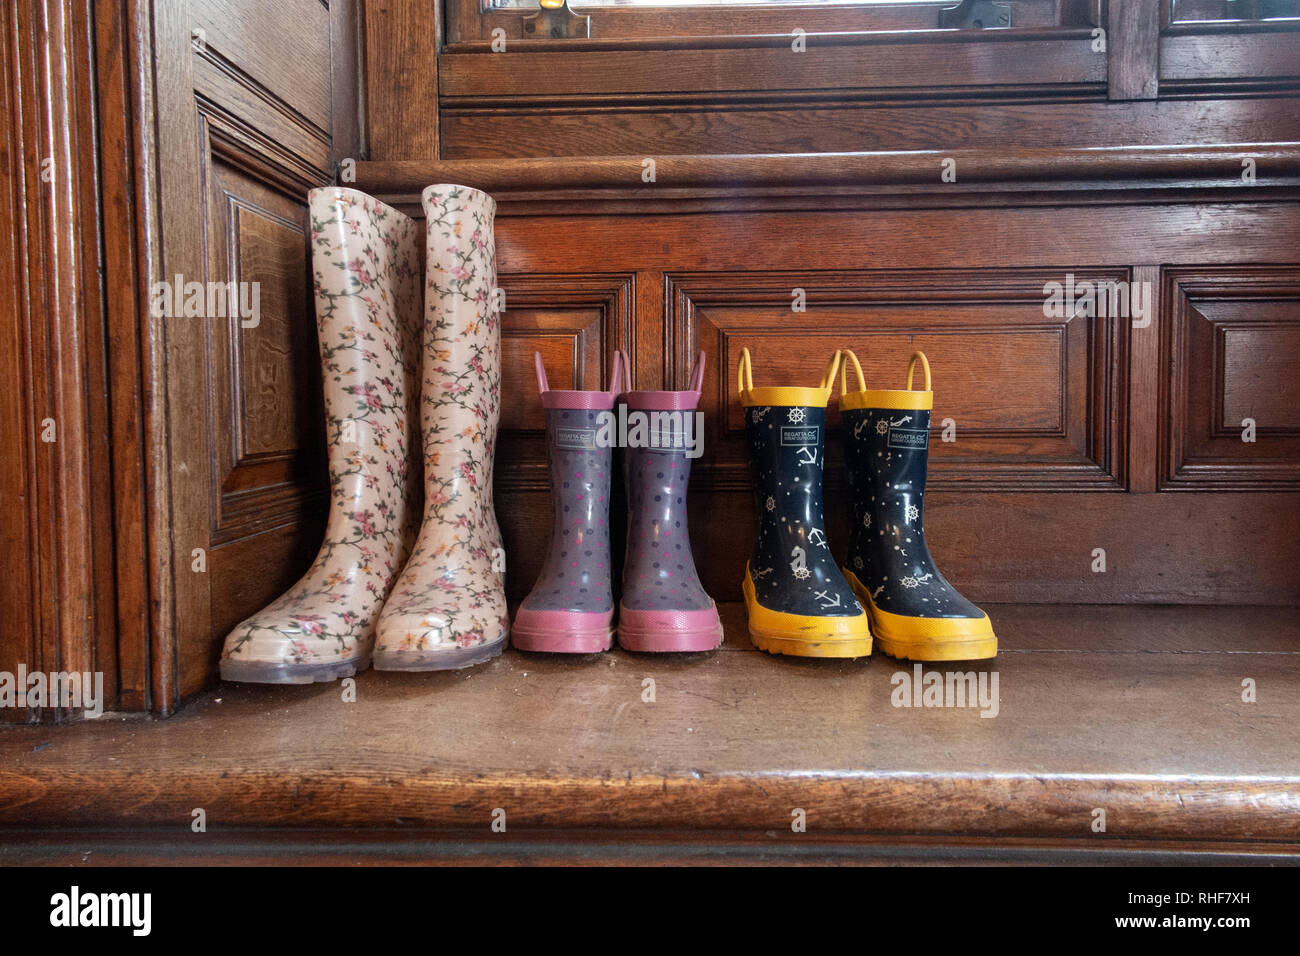 Three pairs of wellington boots - one adult and two children's - in a porch of a house - Stock Image